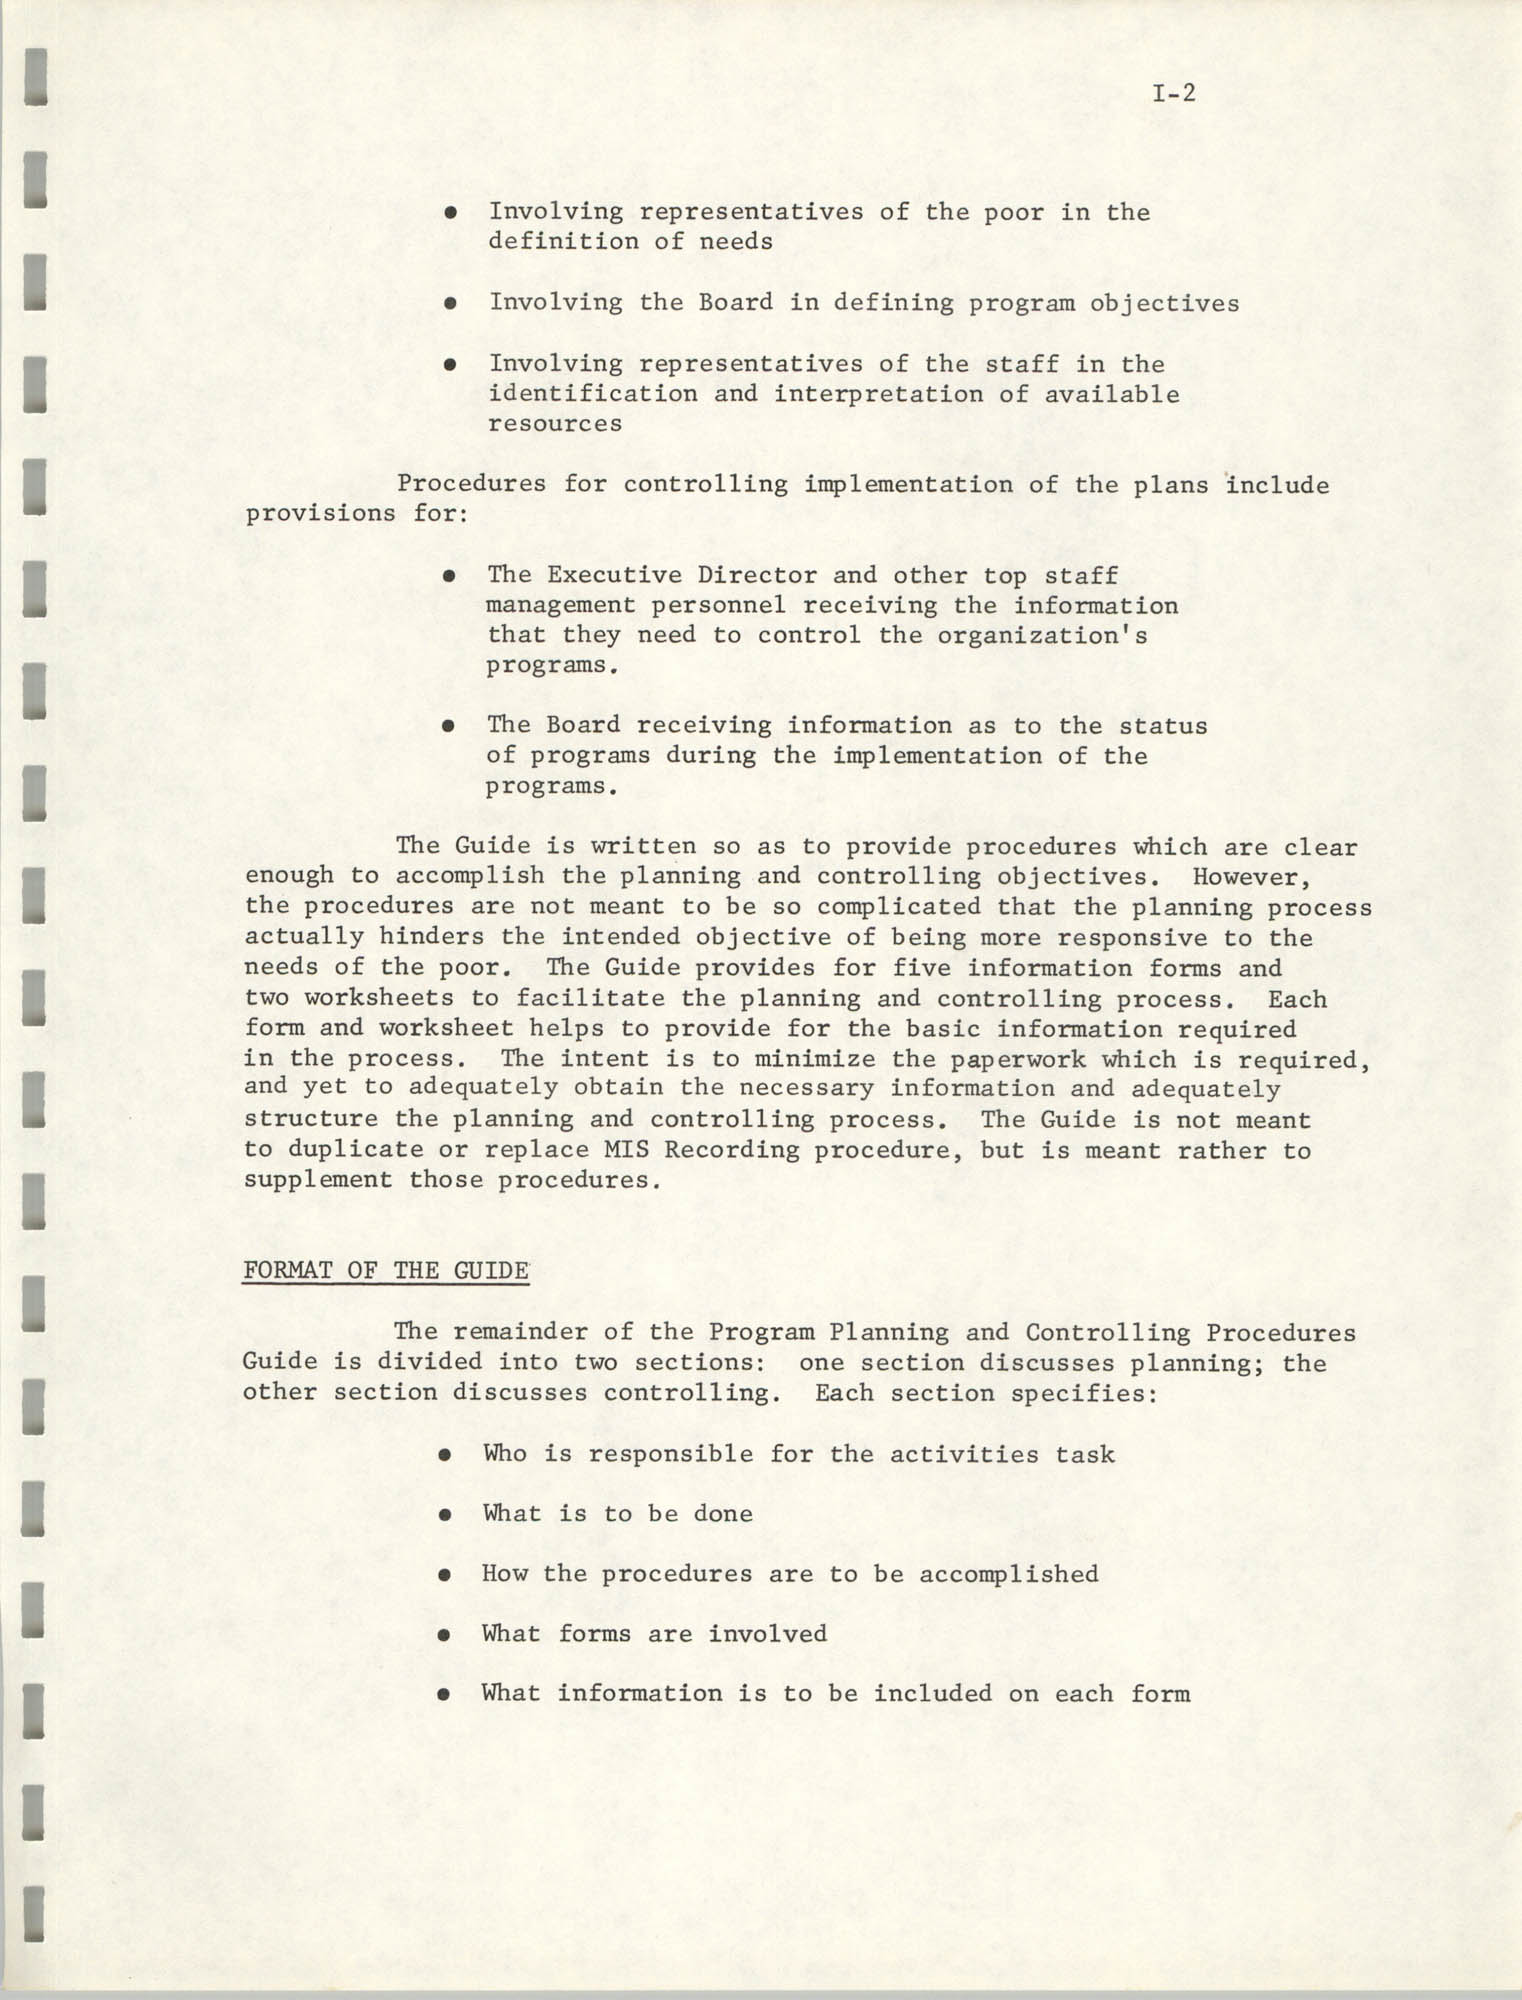 Program Planning and Control Procedures Guide for South Carolina Commission for Farm Workers, Inc., Page I-2